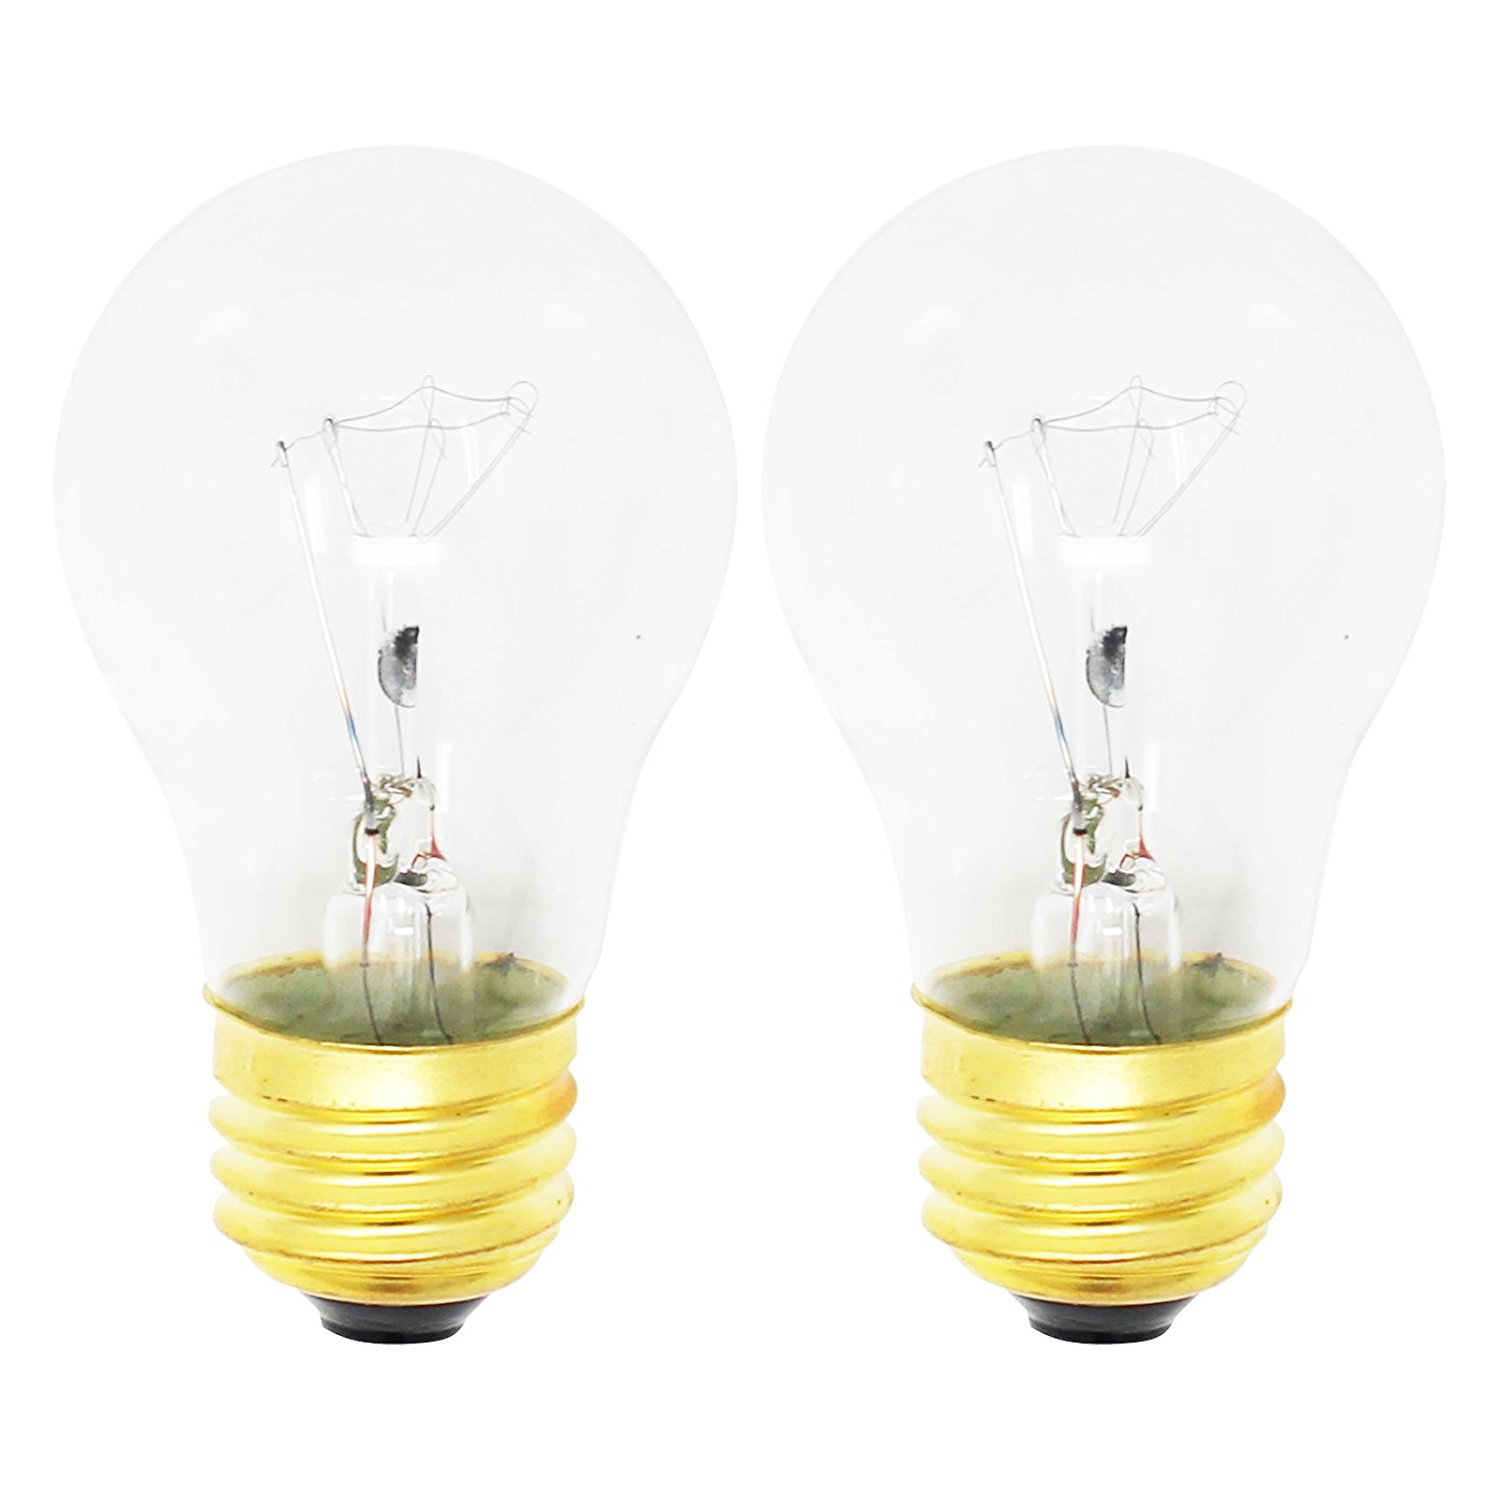 2-Pack Replacement Light Bulb for Frigidaire FGEF3032KWB Range / Oven - Compatible Frigidaire 316538901 Light Bulb